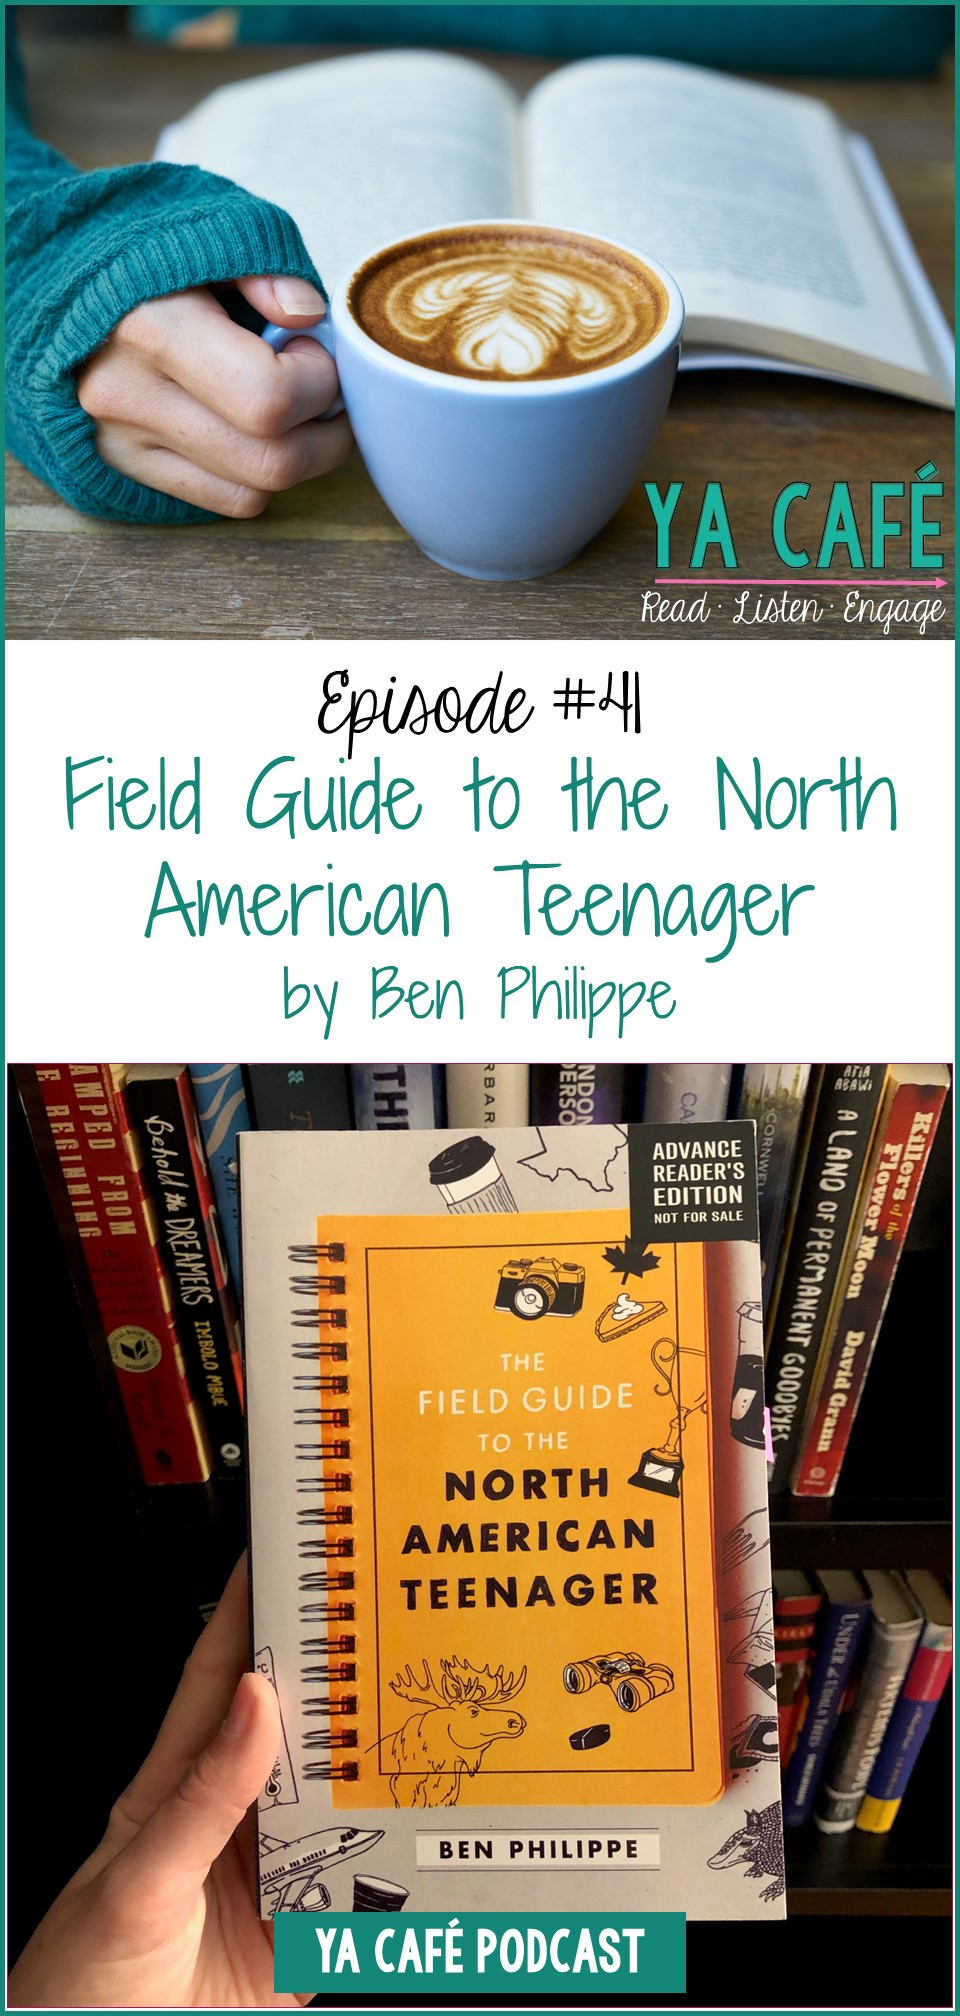 42 The Field Guide to the North American Teenager by Ben Philippe